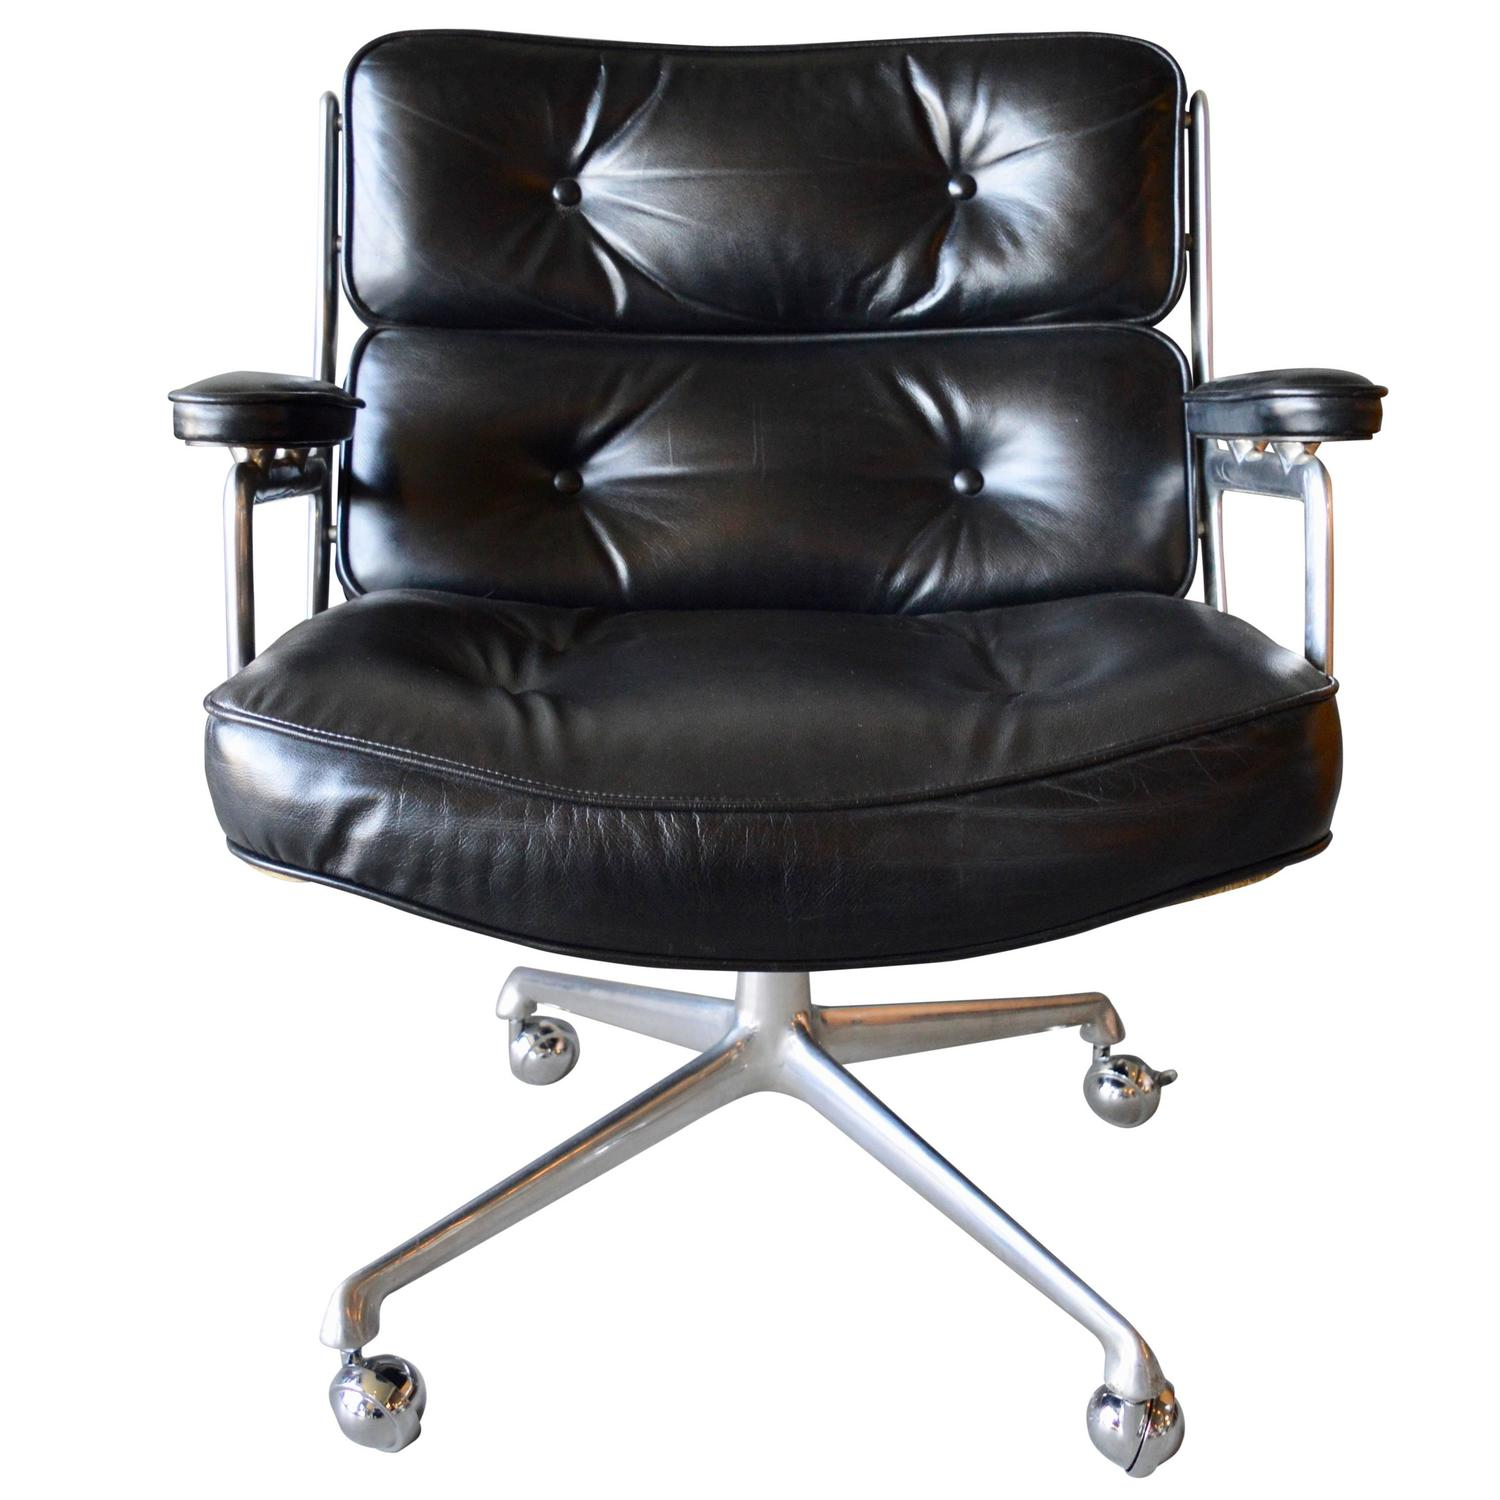 black lifetime chair covers plastic chairs kmart vintage leather eames time life for sale at